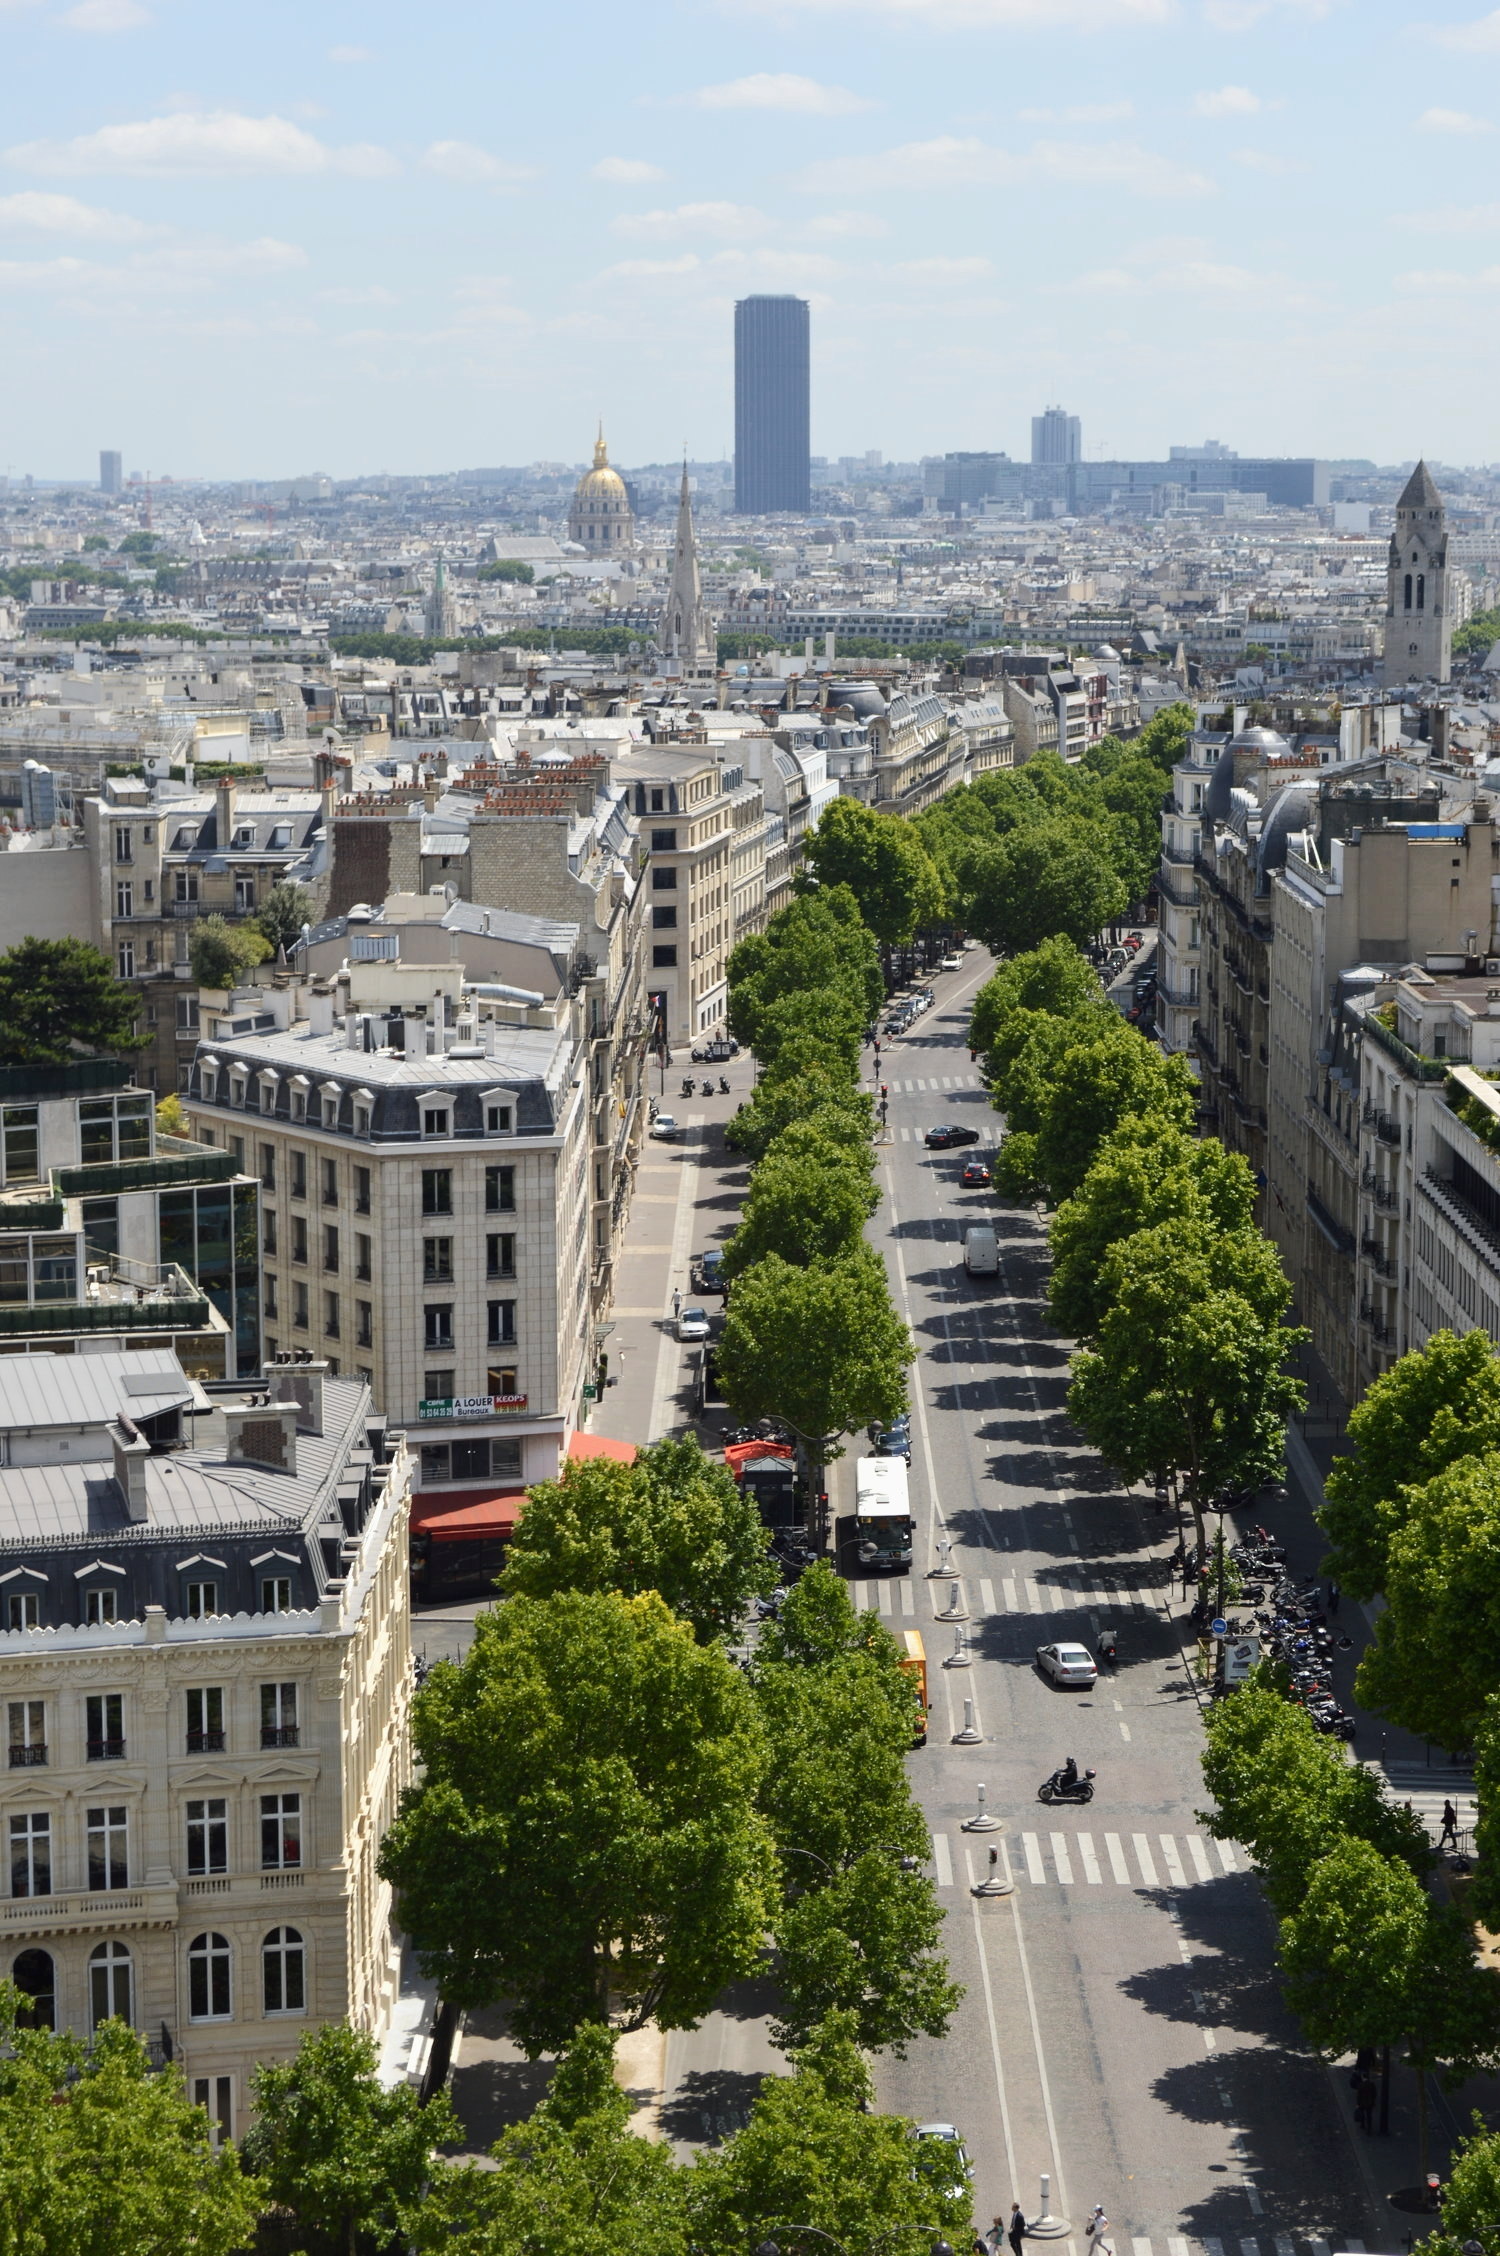 View from the Arc de Triomphe in Paris, France